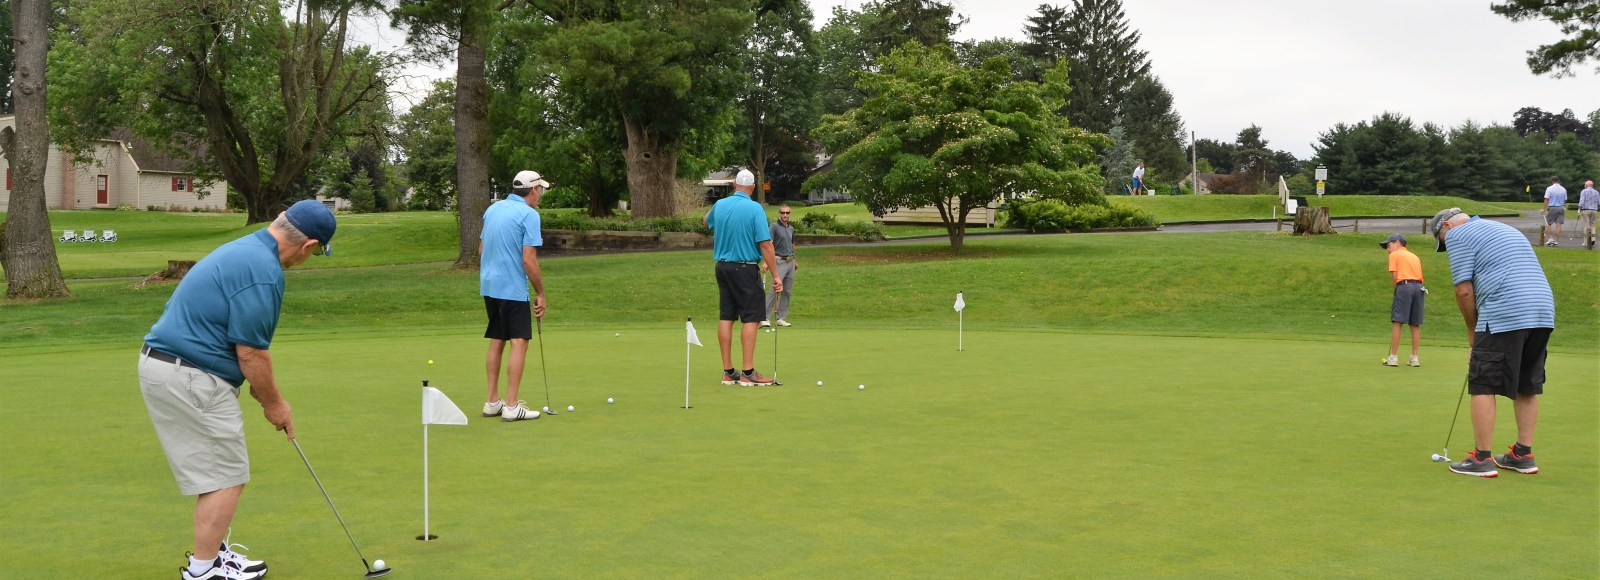 Registration is open for Charity Golf Scramble on June 18